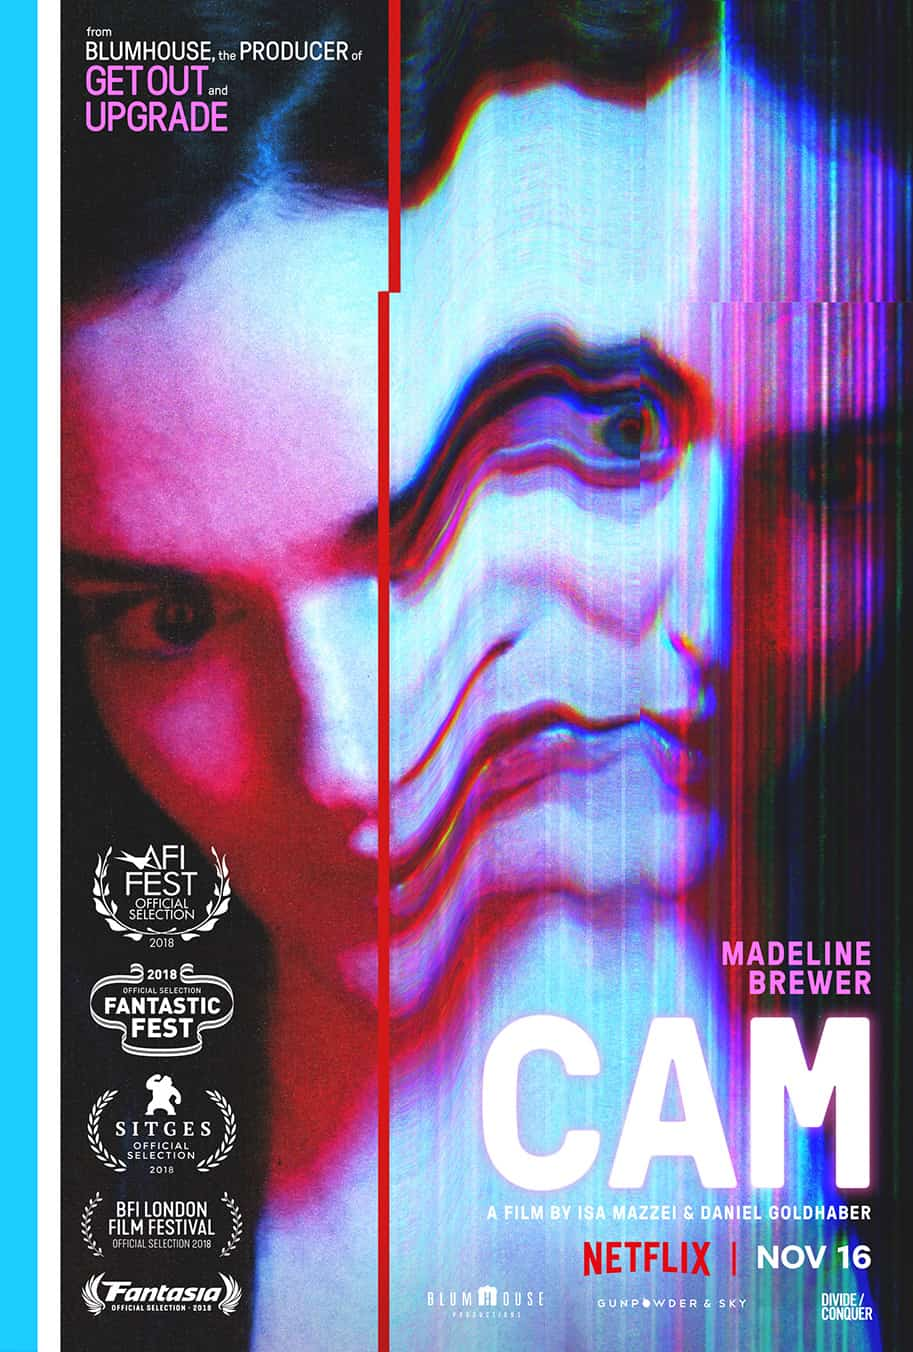 Mike's Review: CAM (2018)